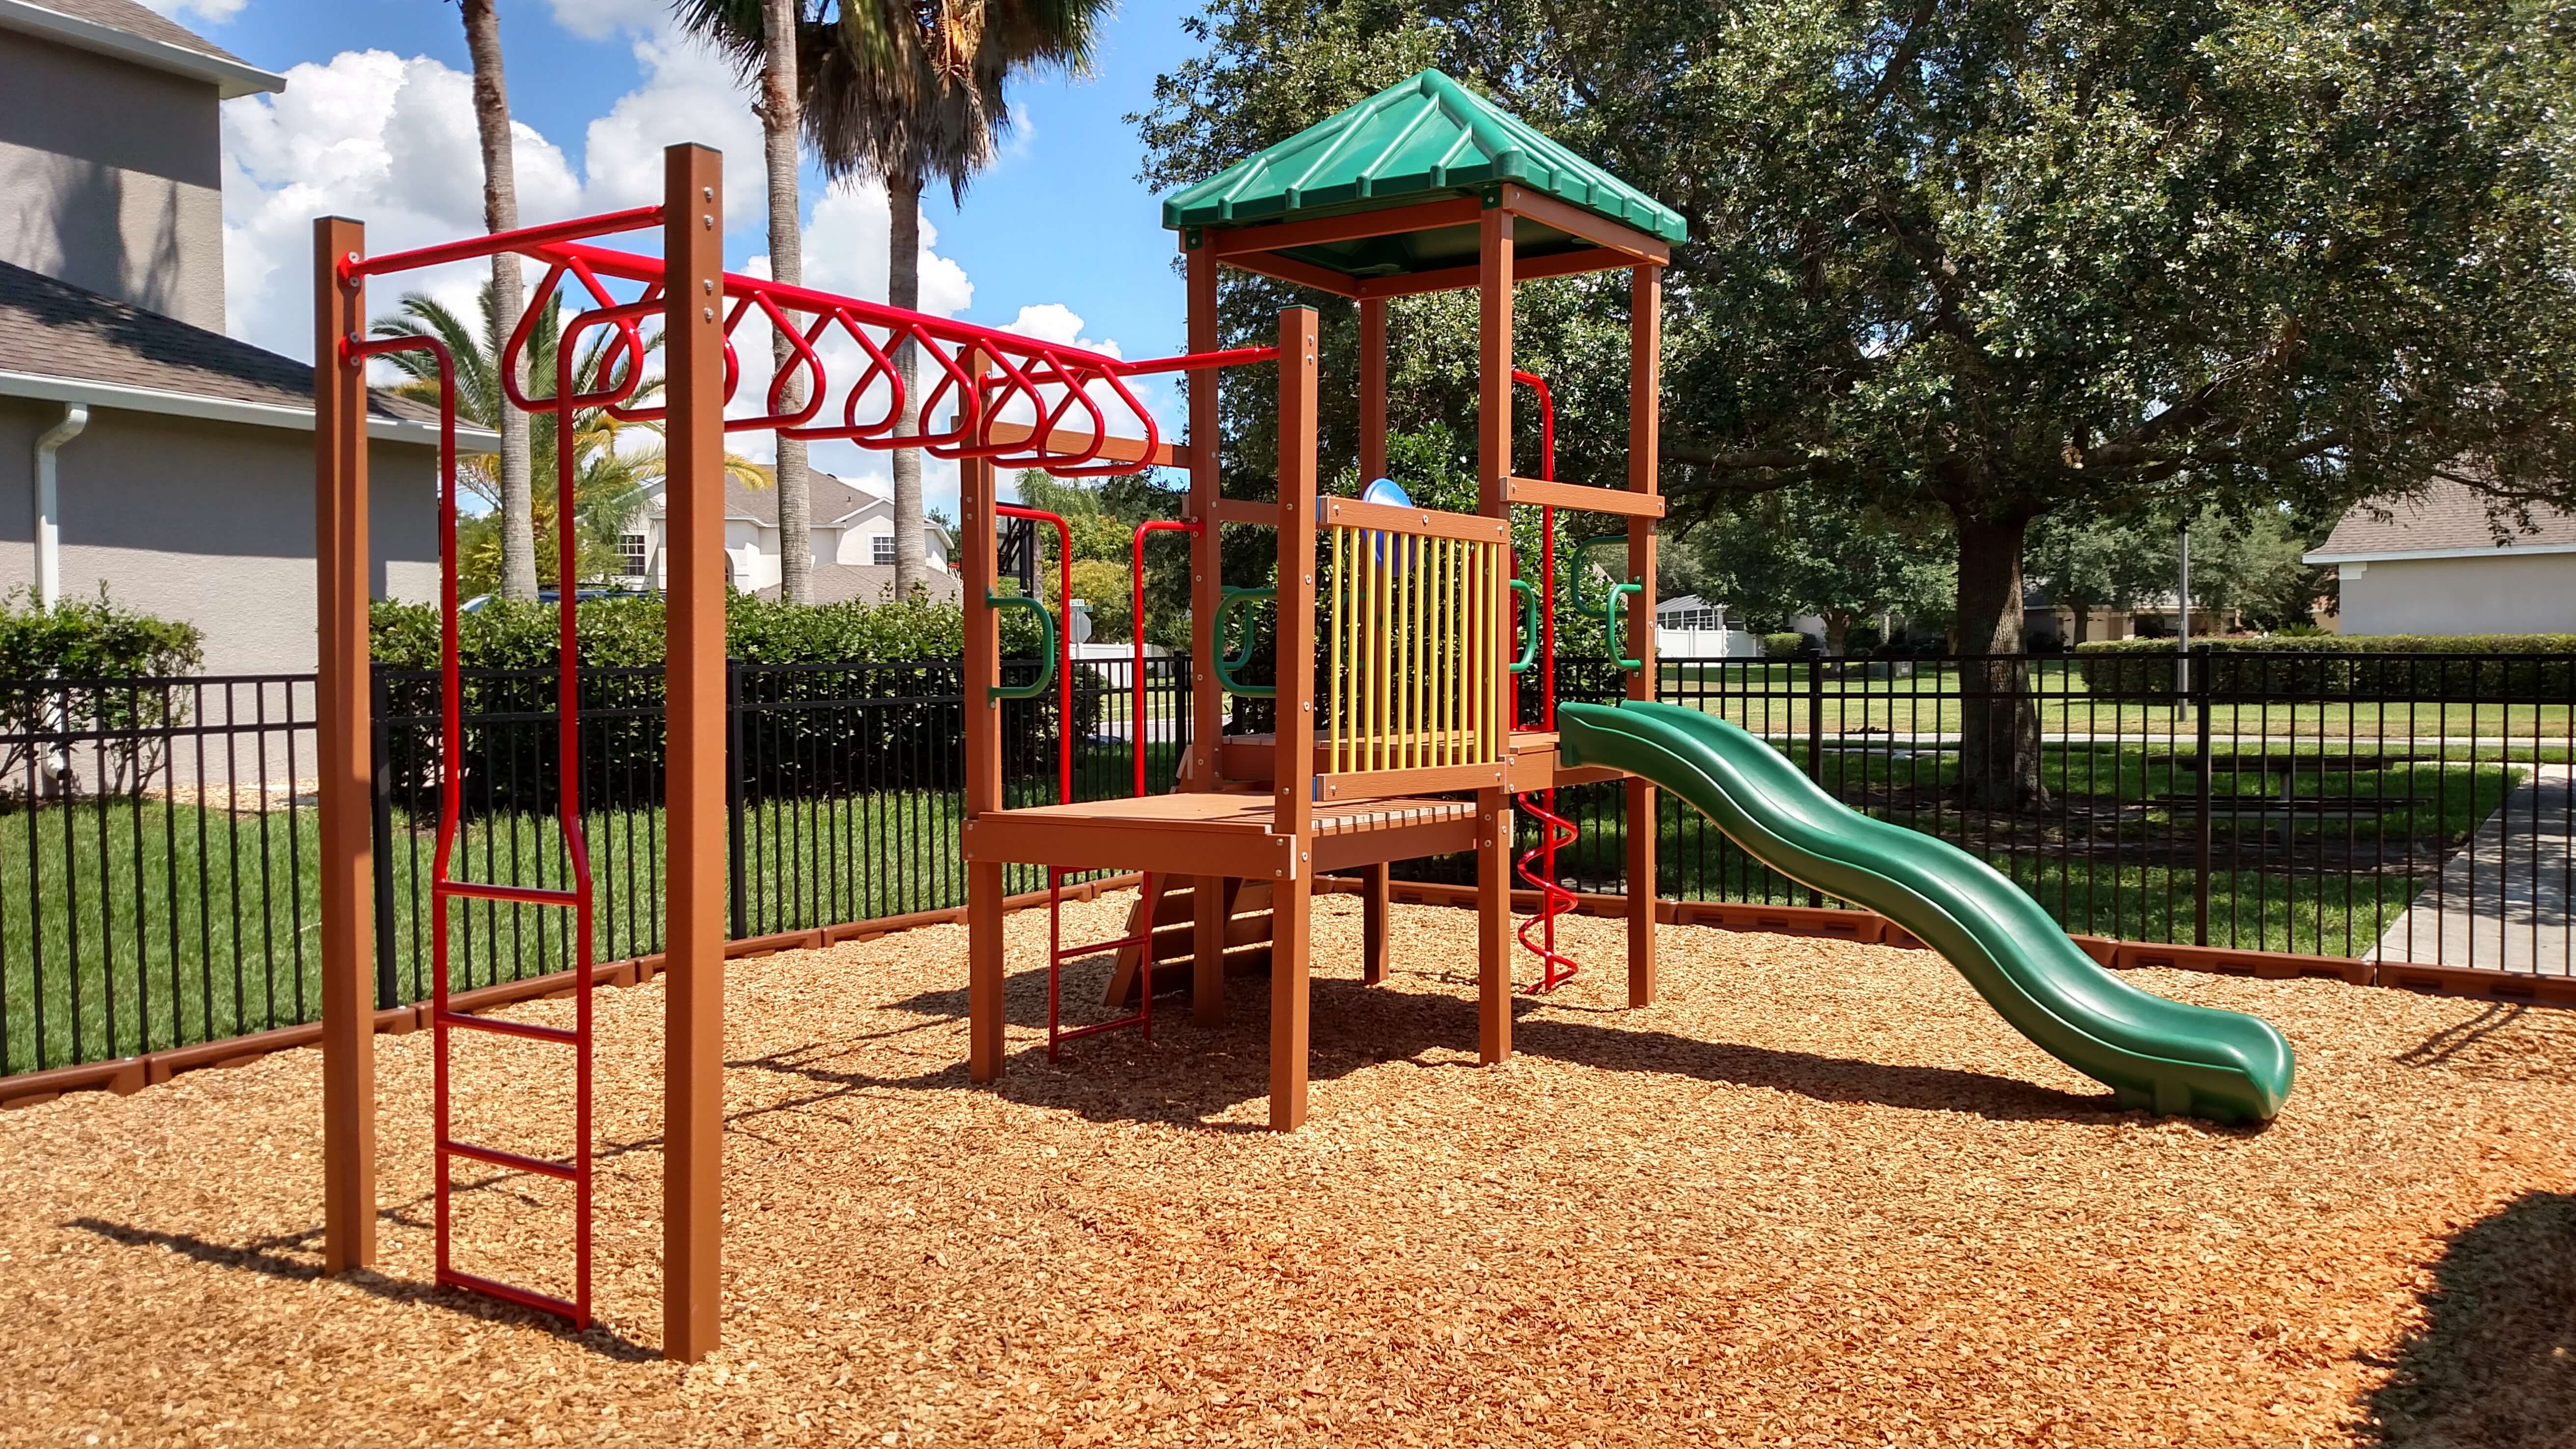 Backyard Equipment commercial playground equipment orlando - welcome to central